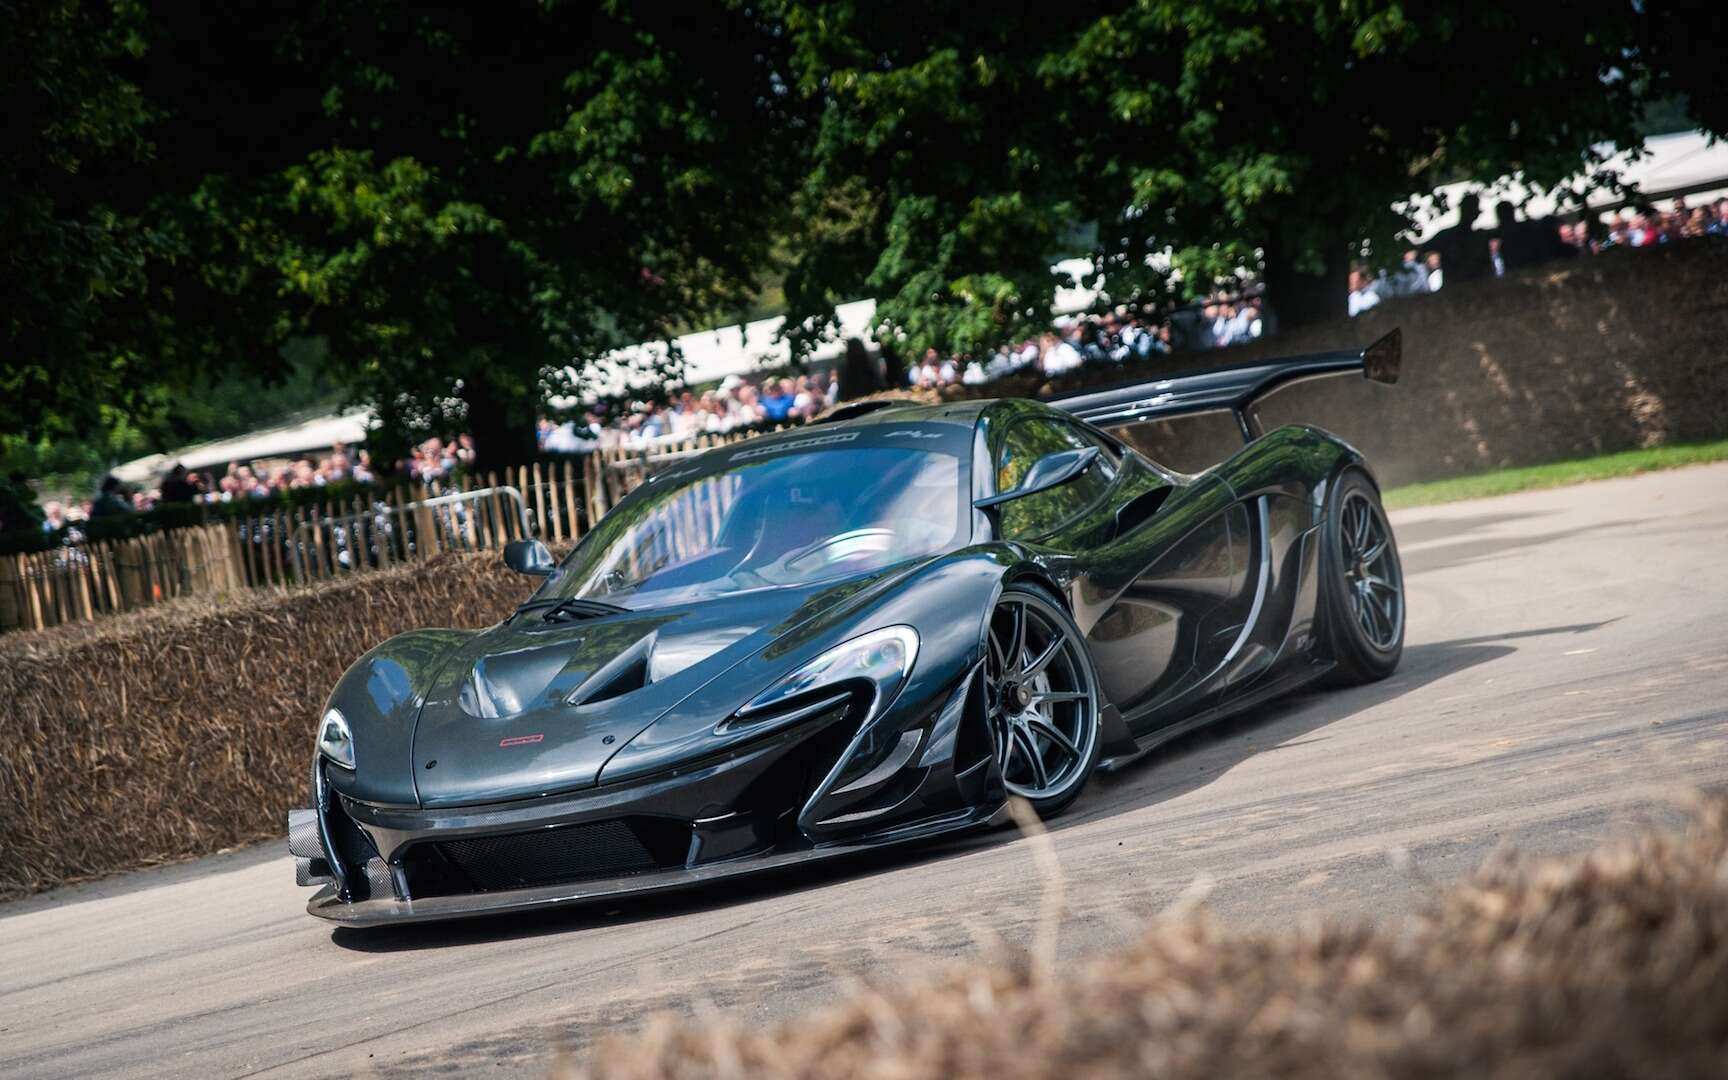 Top 5 Most Expensive Cars in the World in 2017